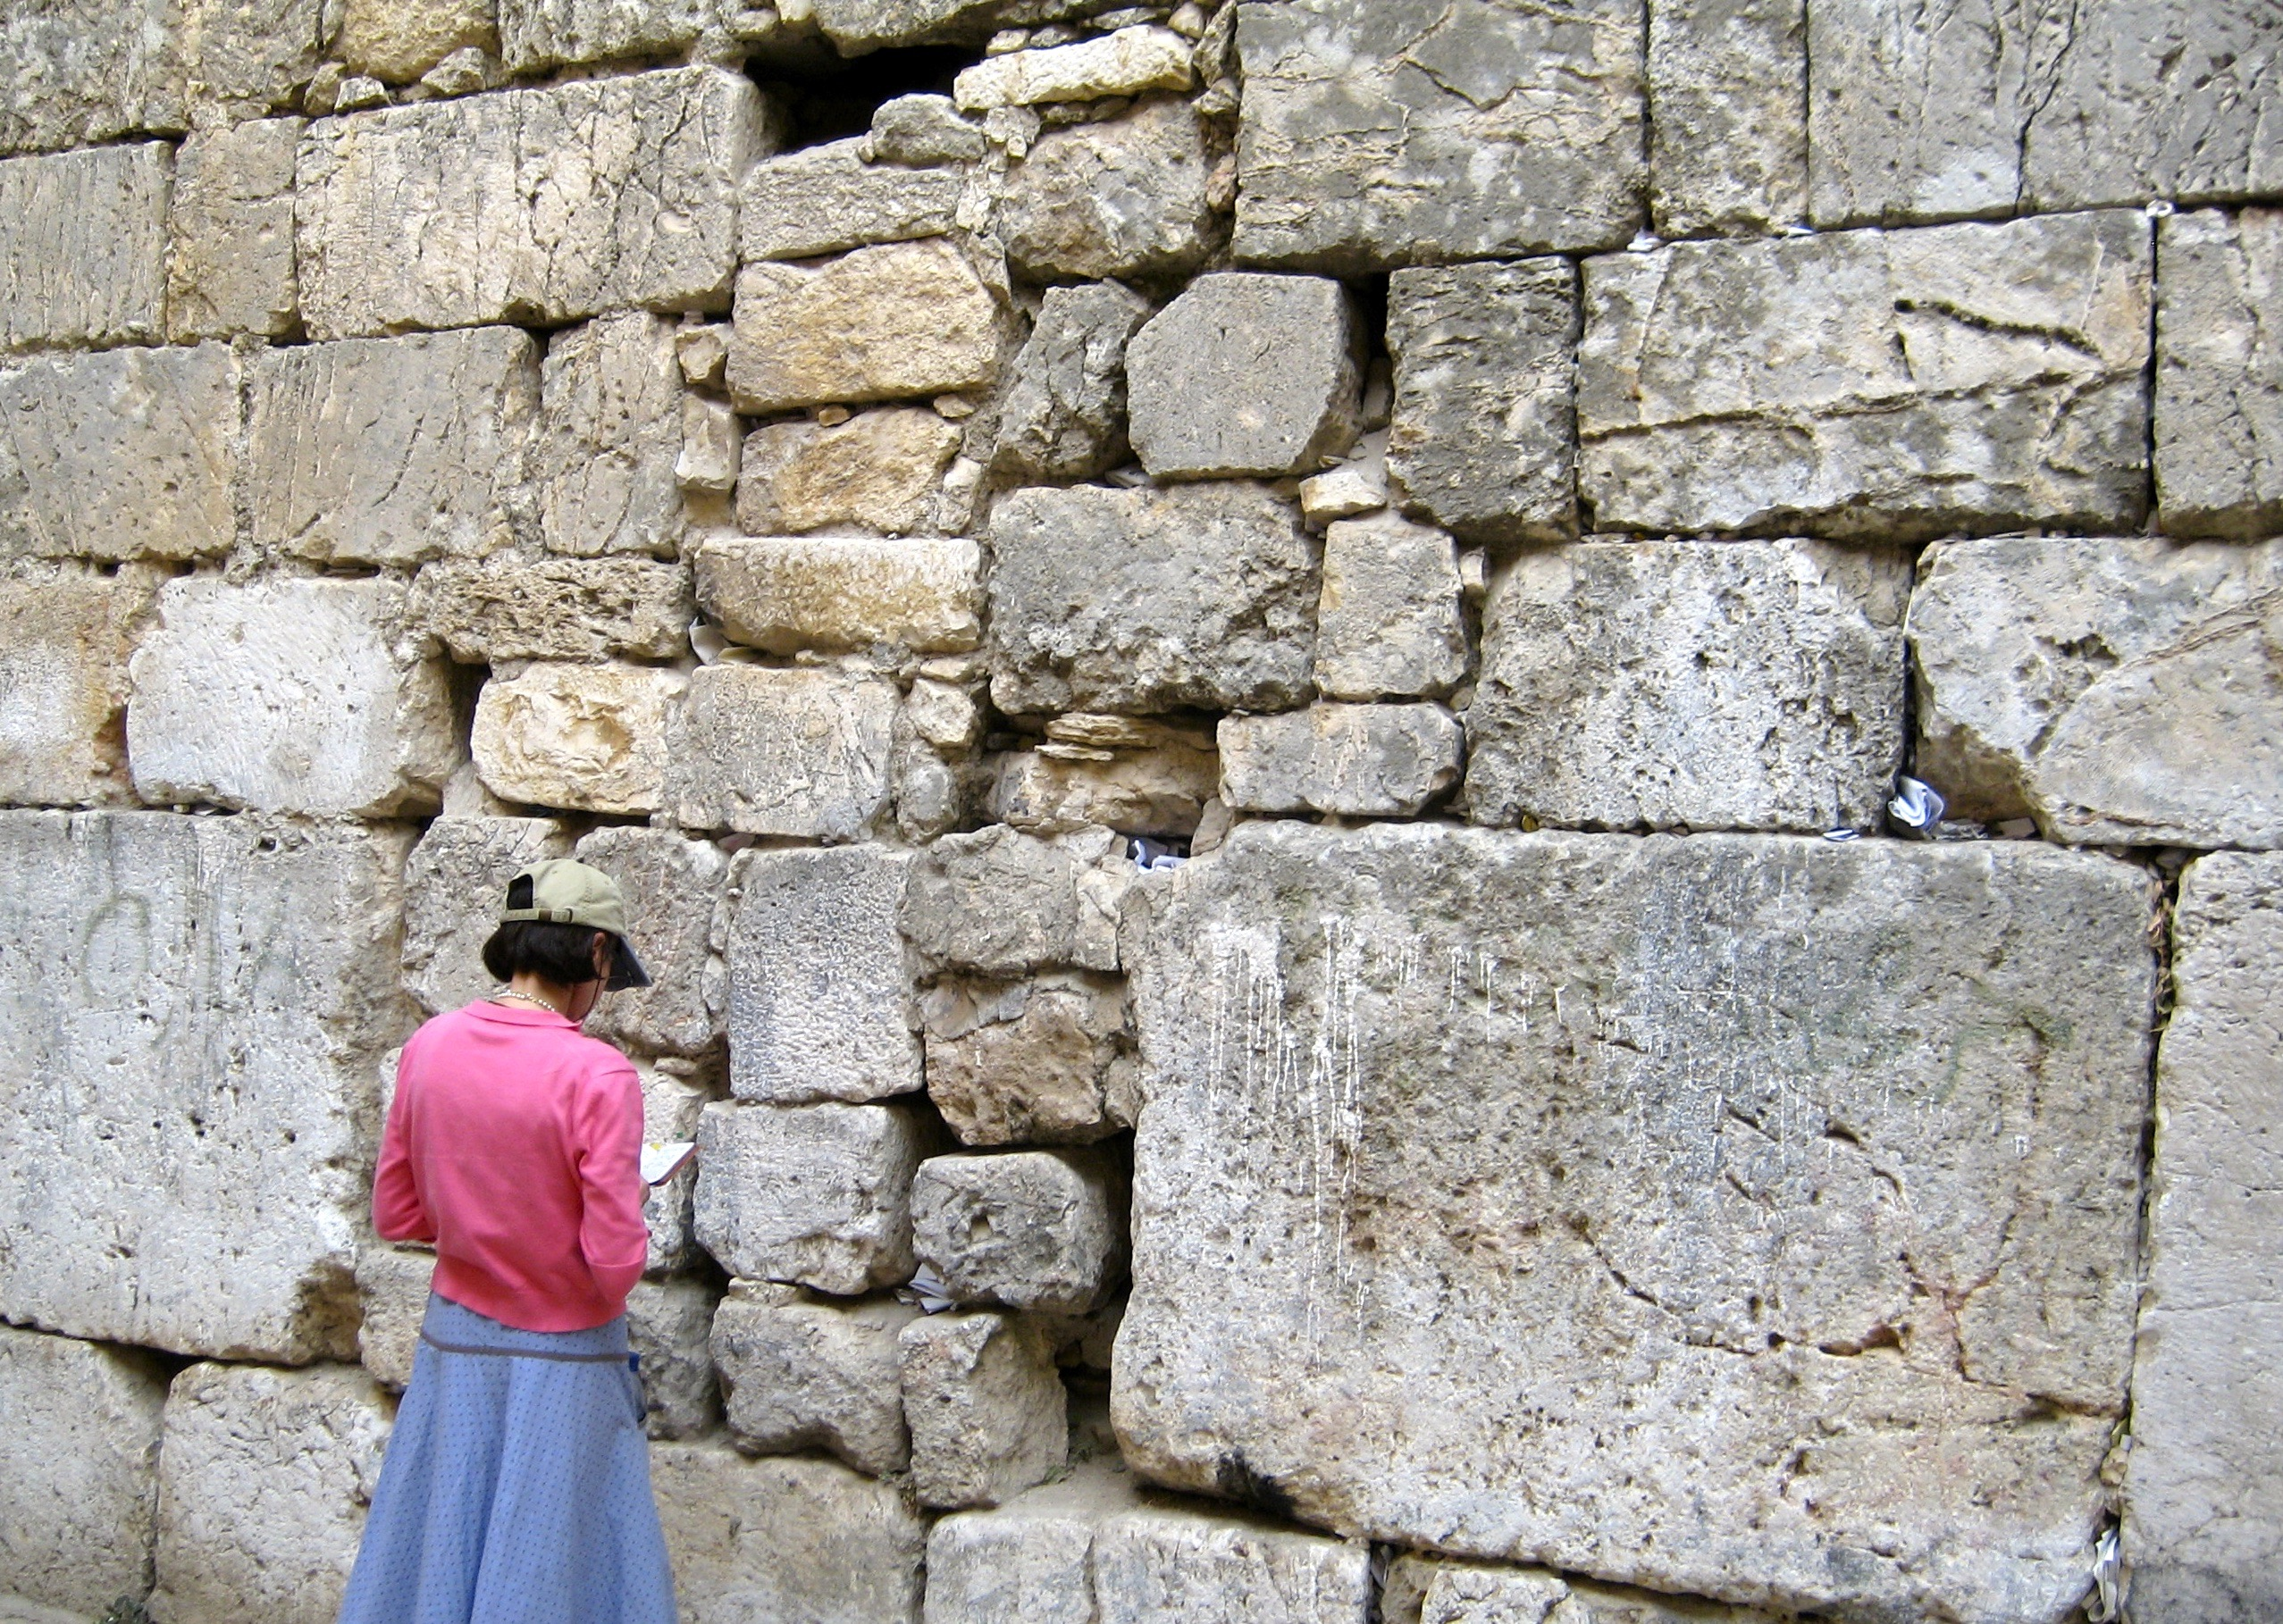 Karen prays at the Little Kotel.